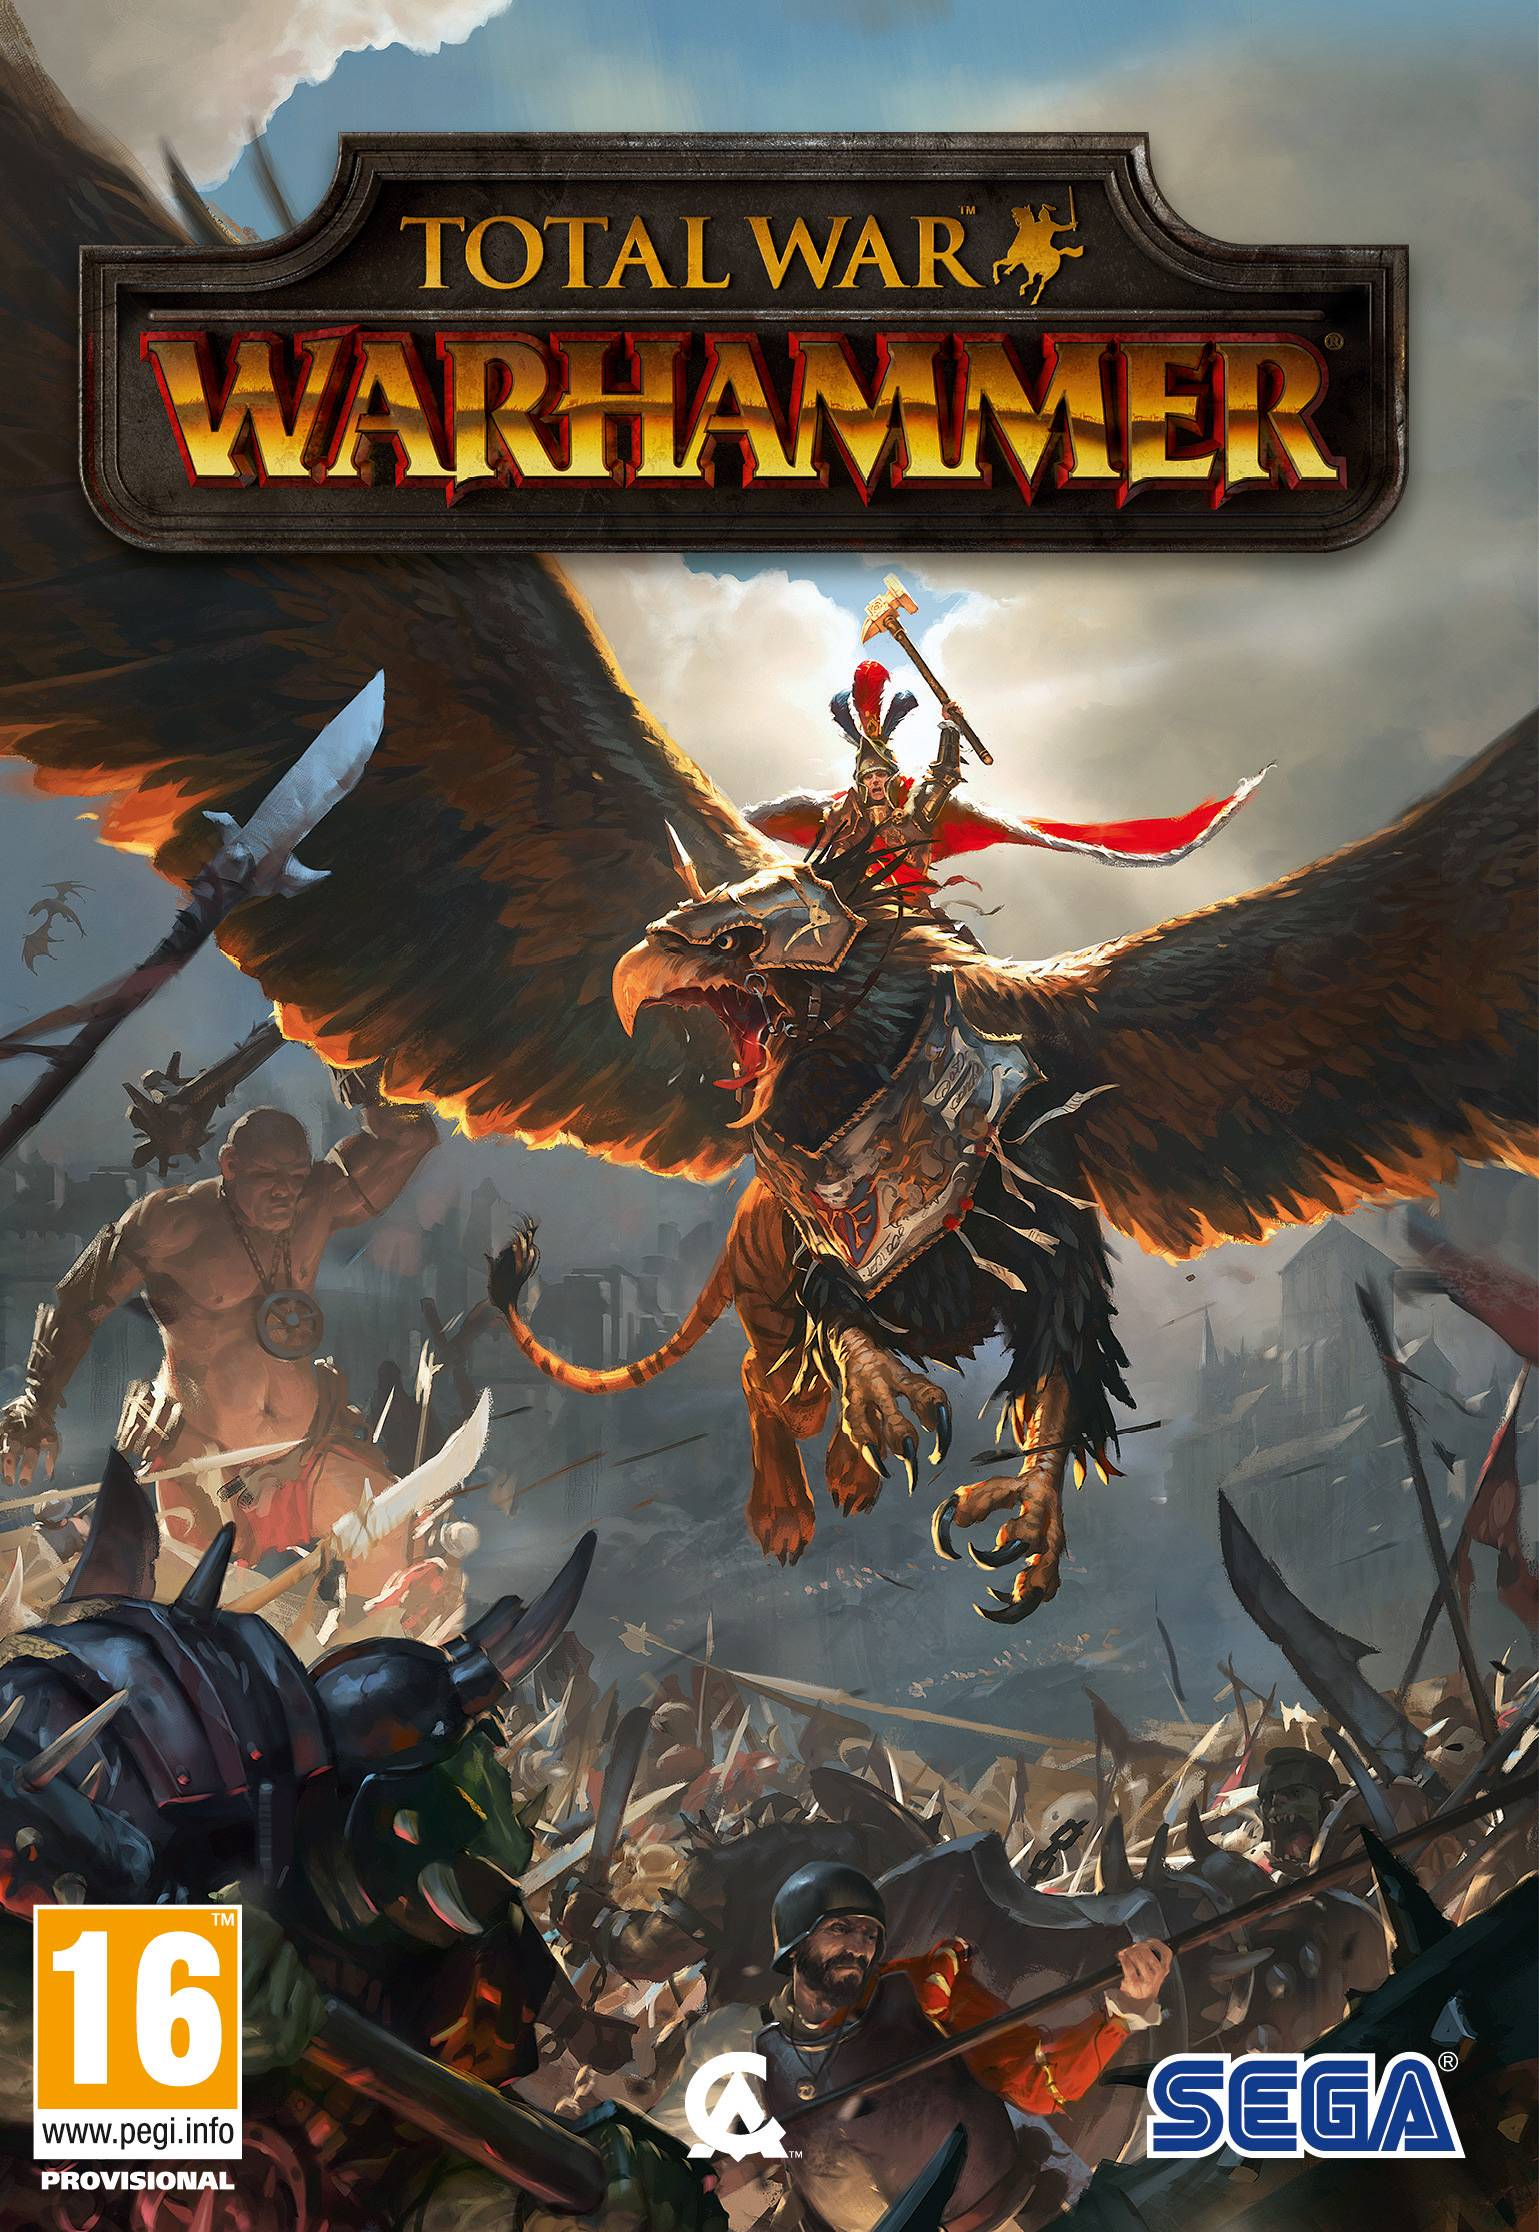 Image result for Total War WARHAMMER cover pc